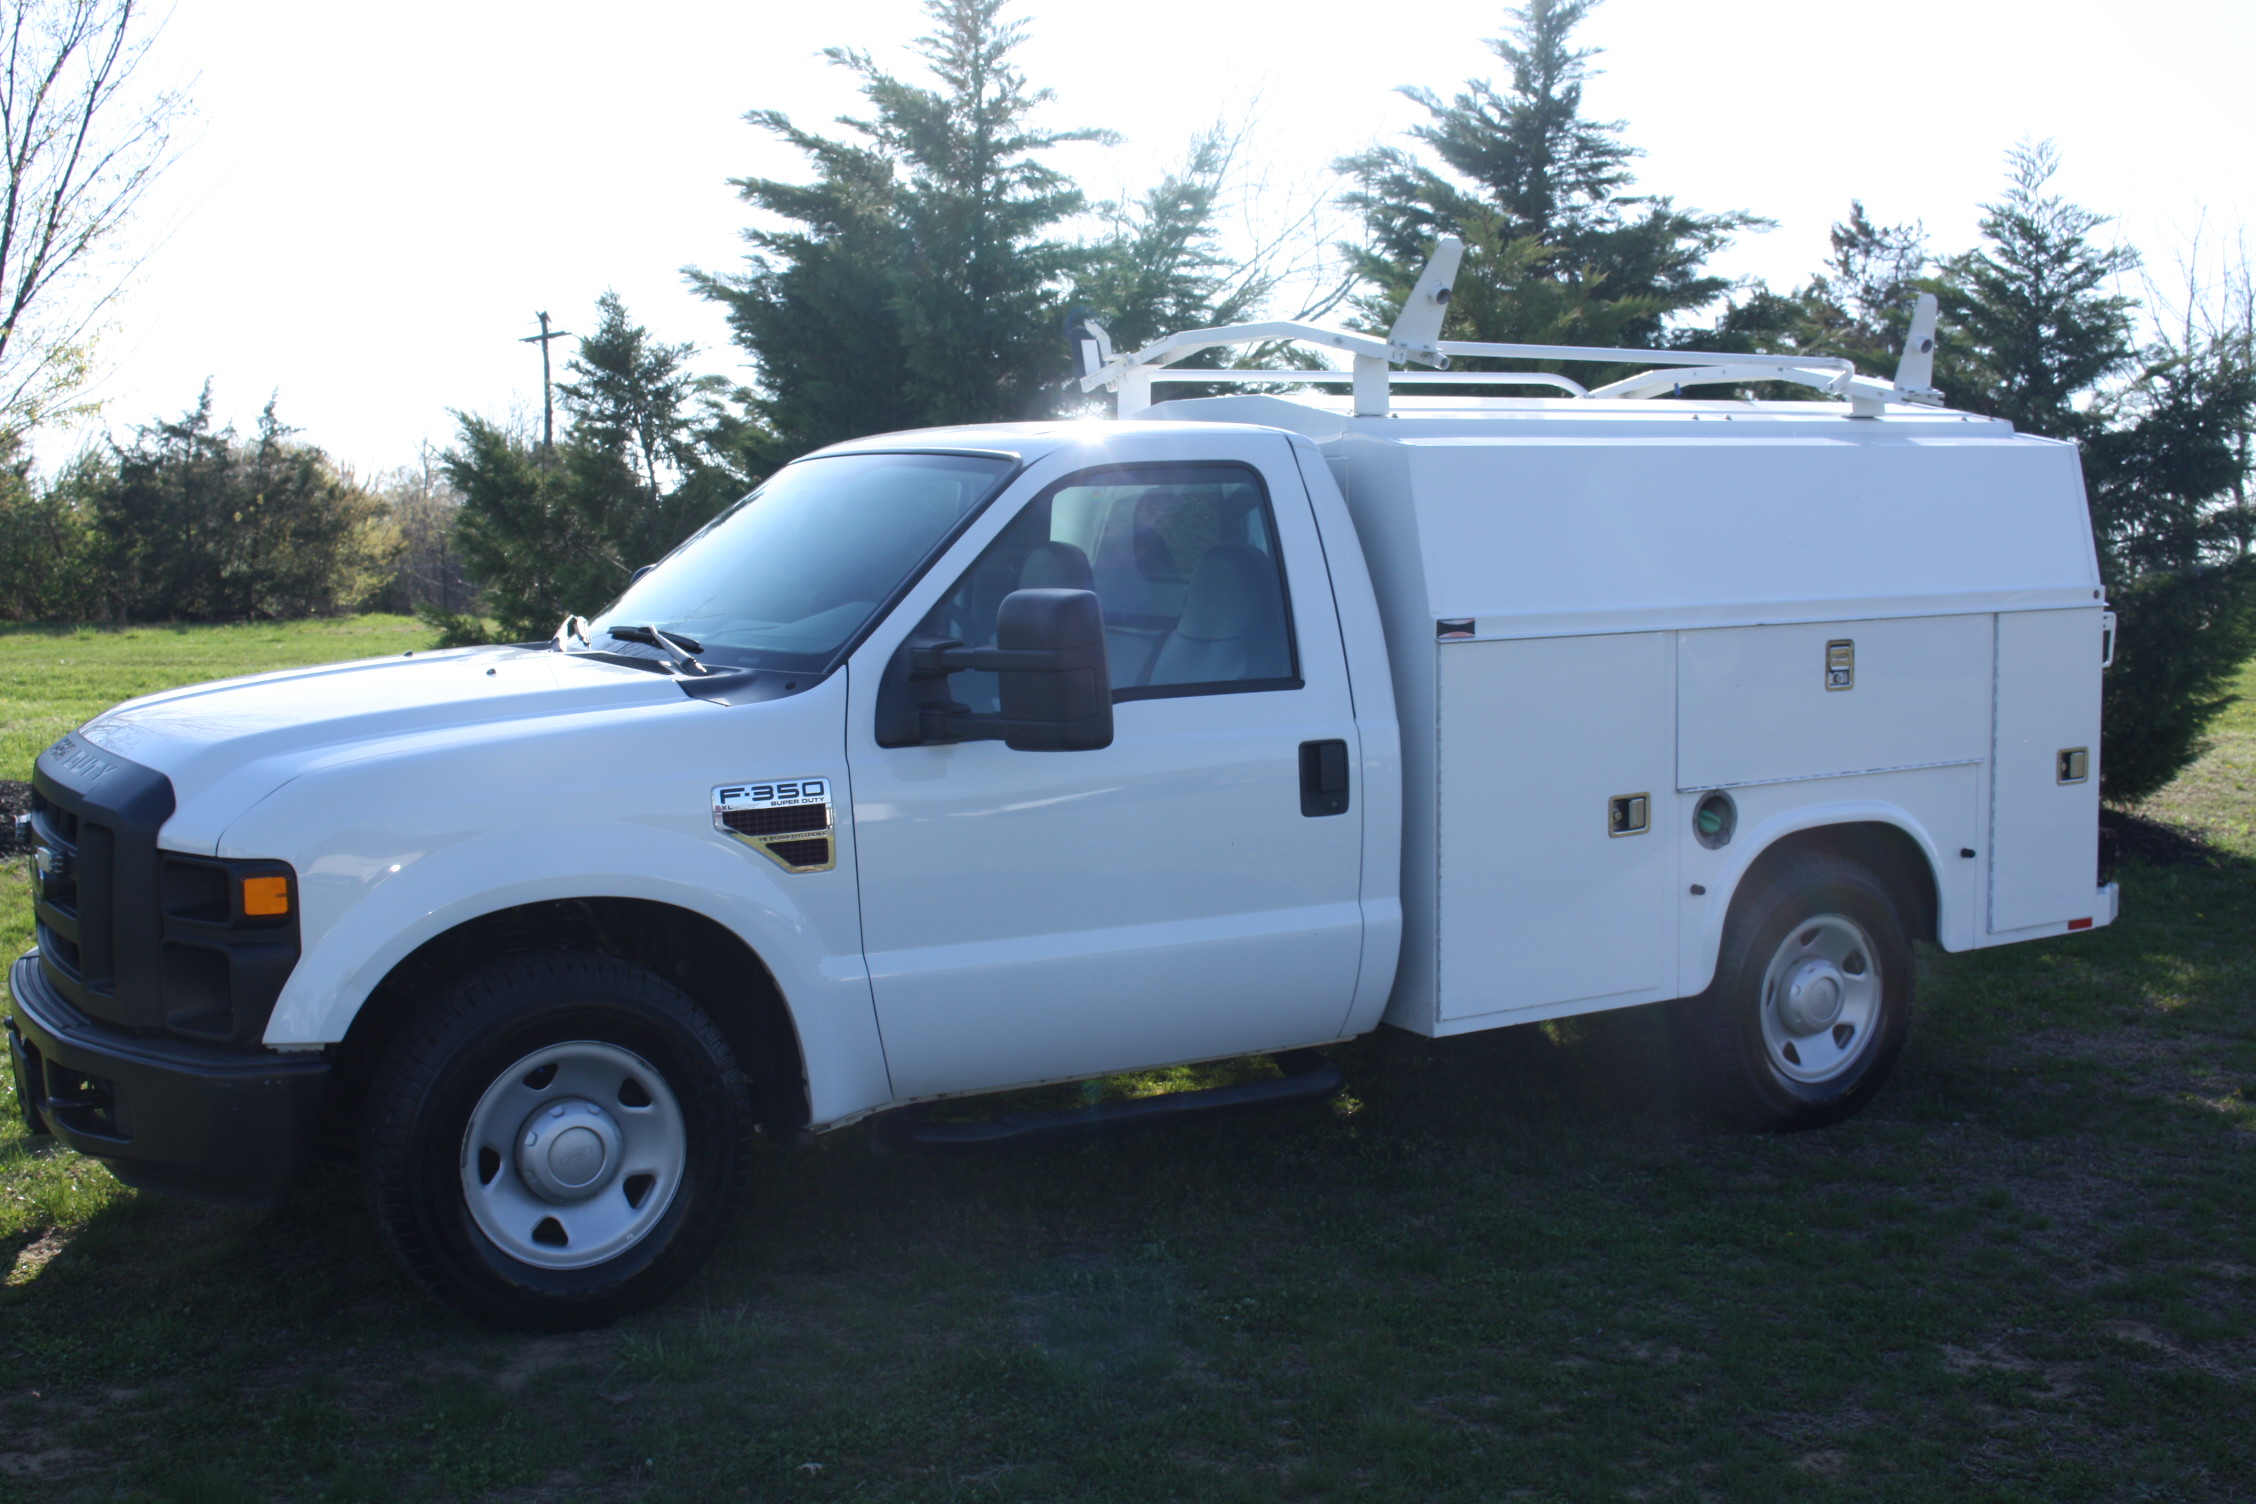 IMG 1202 1 - 2009 FORD F350 WITH KNAPHEIDE ENCLOSED UTILITY